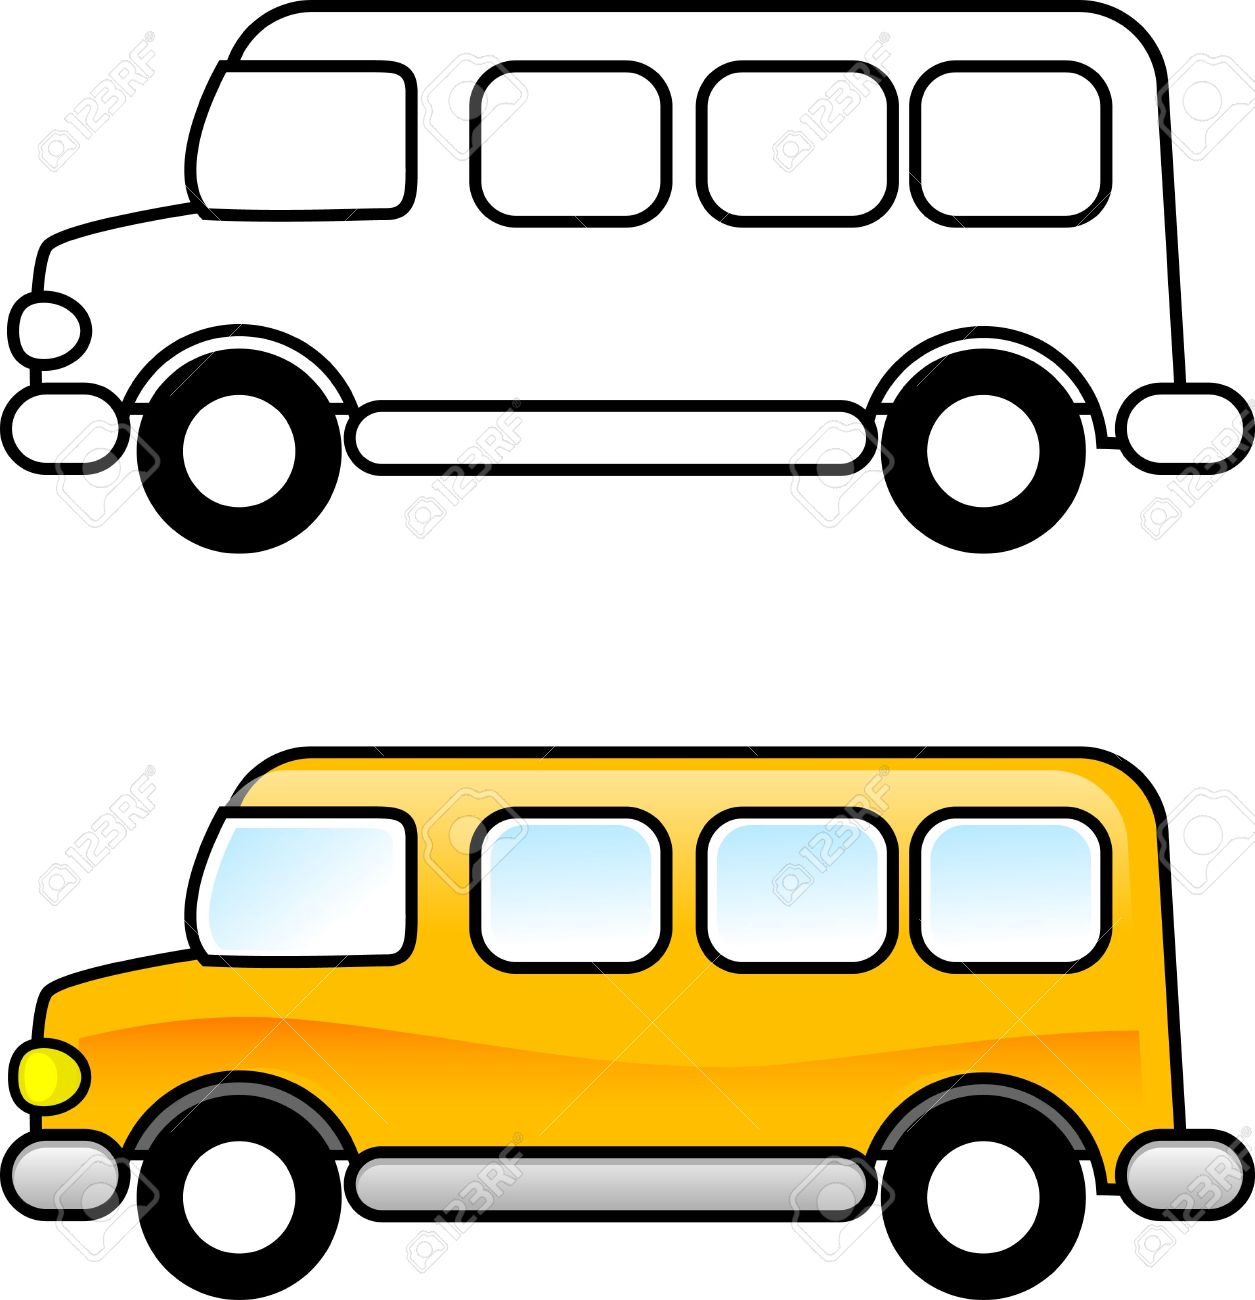 Bus Clipart for you.